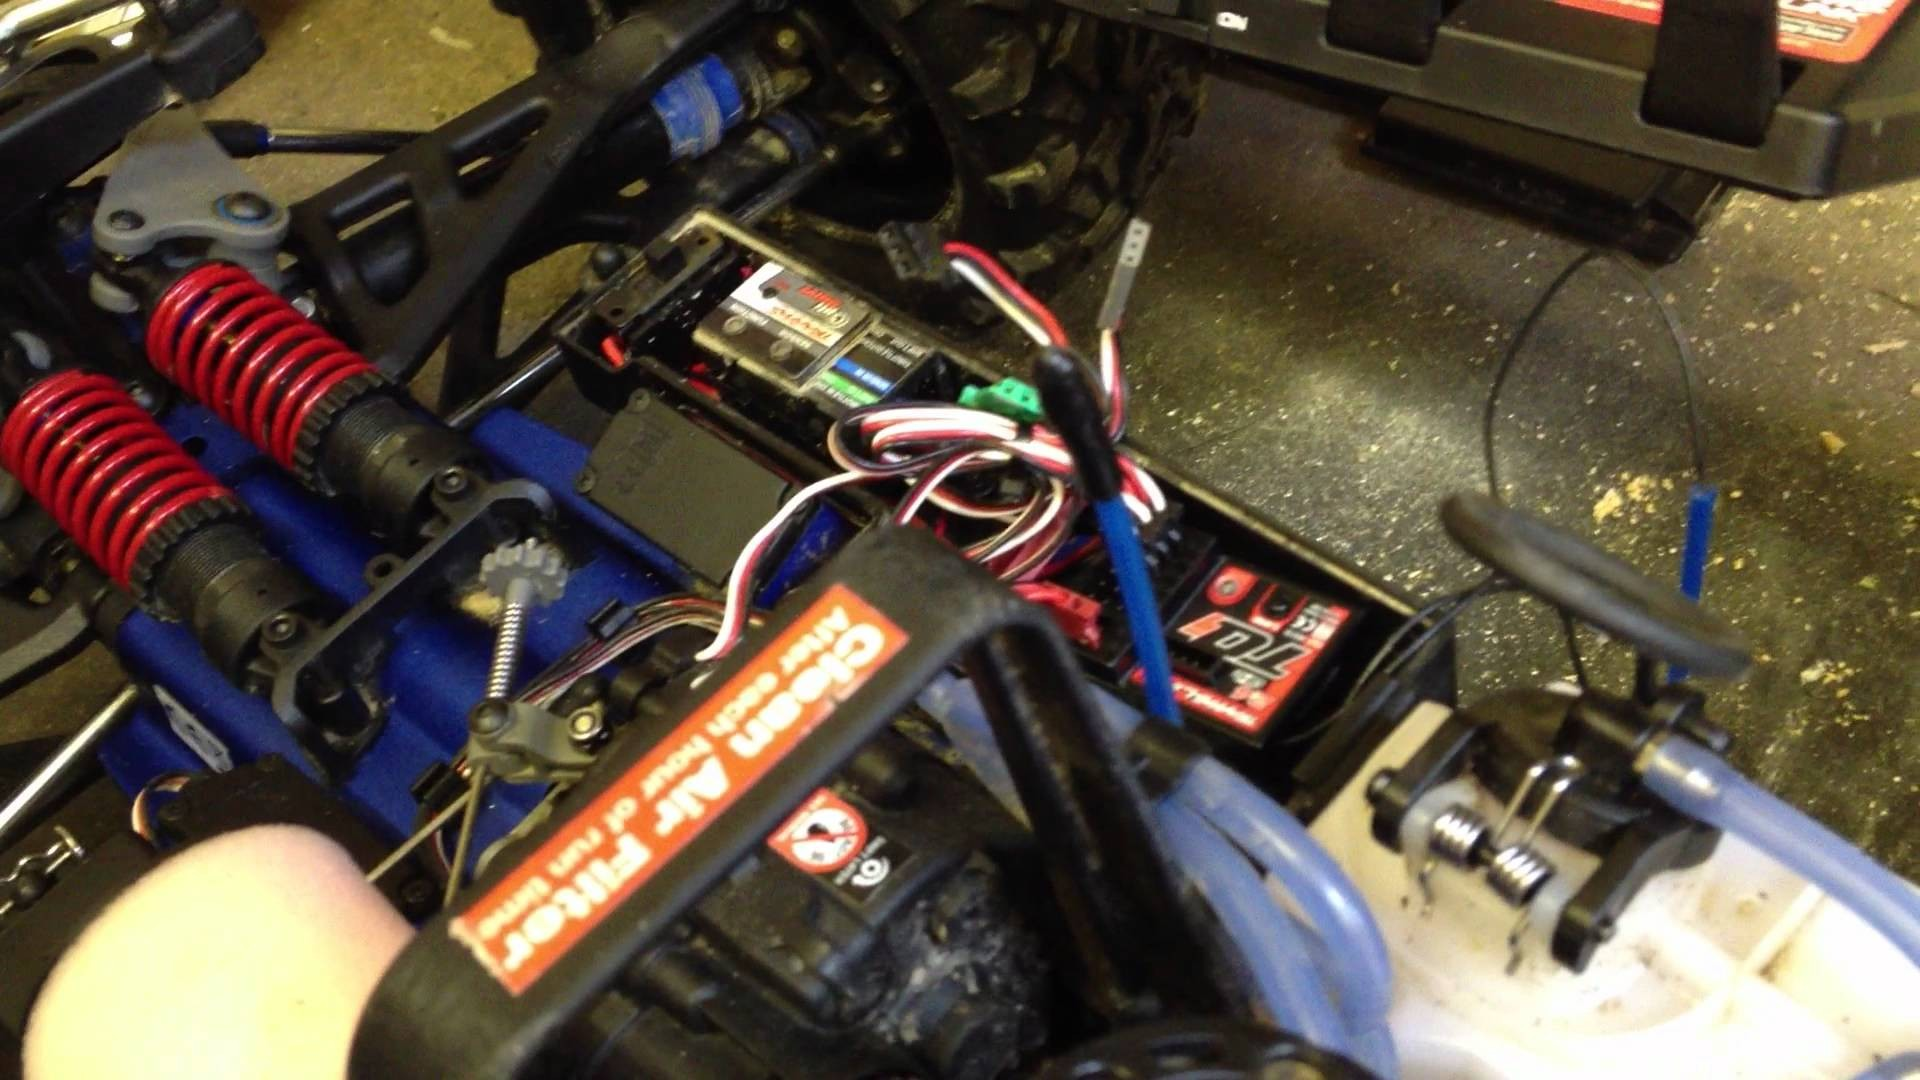 Traxxas Tqi Receiver Wiring Diagram from mainetreasurechest.com